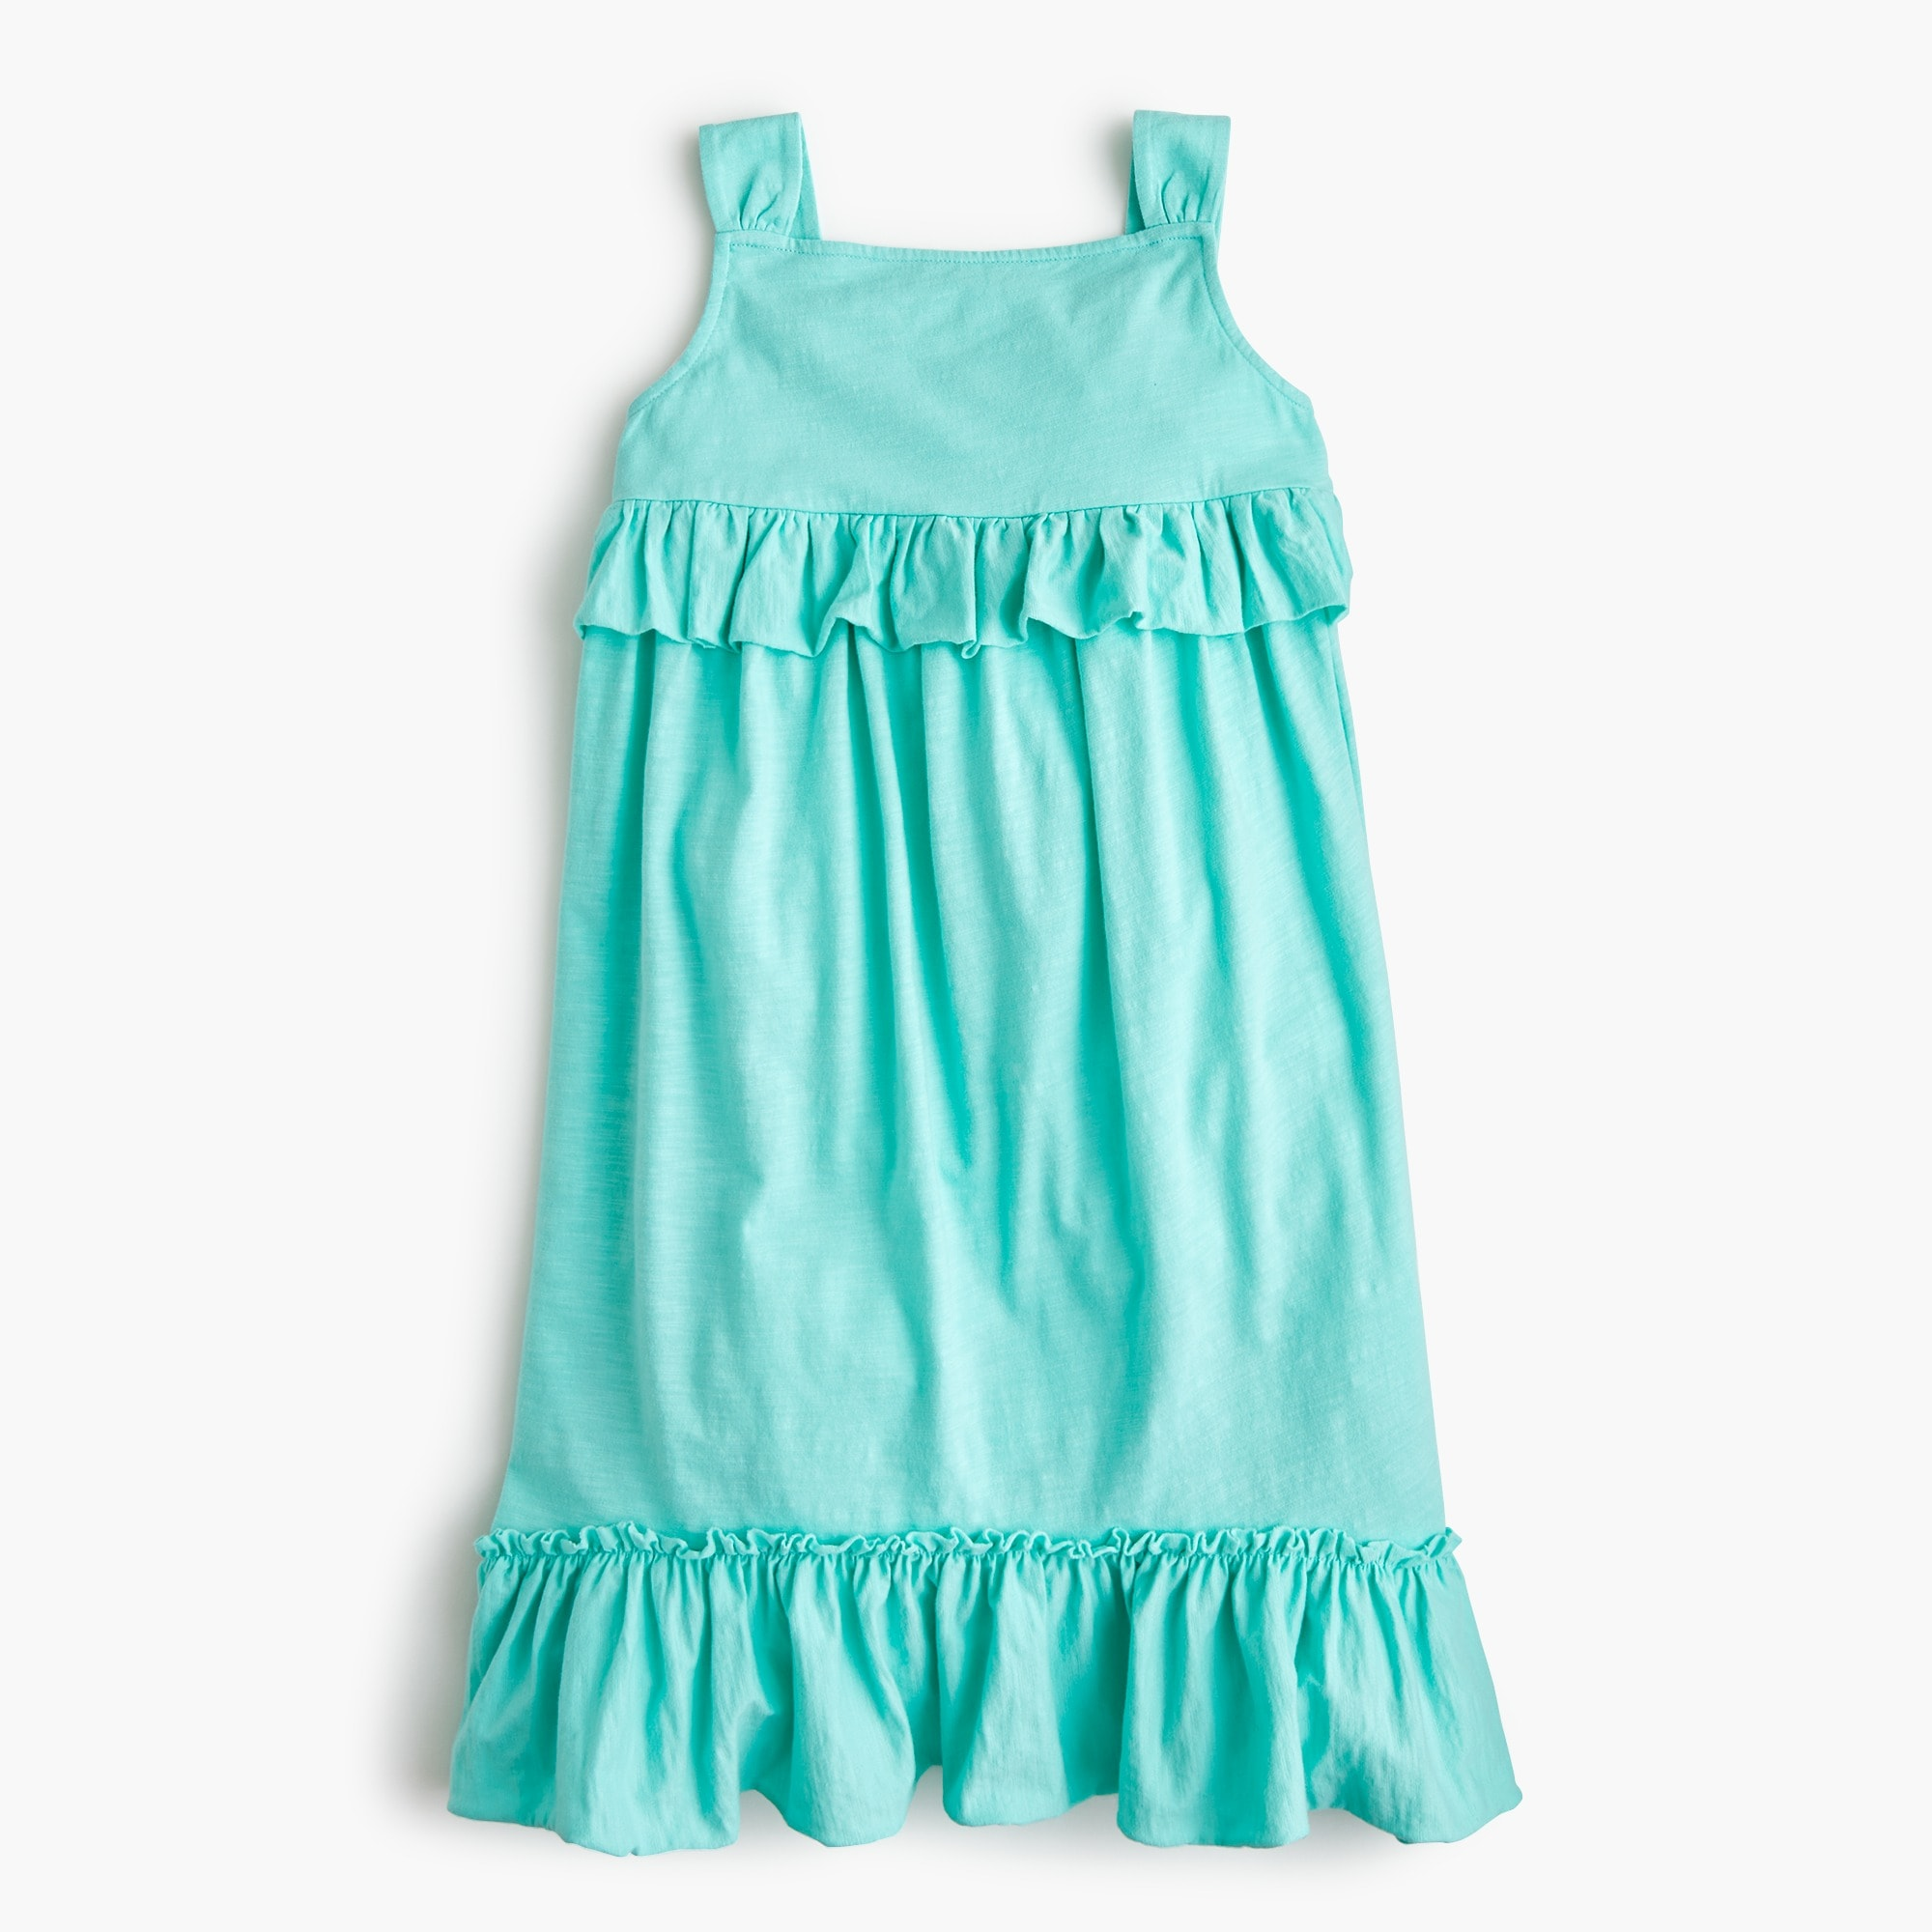 Girls' ruffle tank dress girl new arrivals c